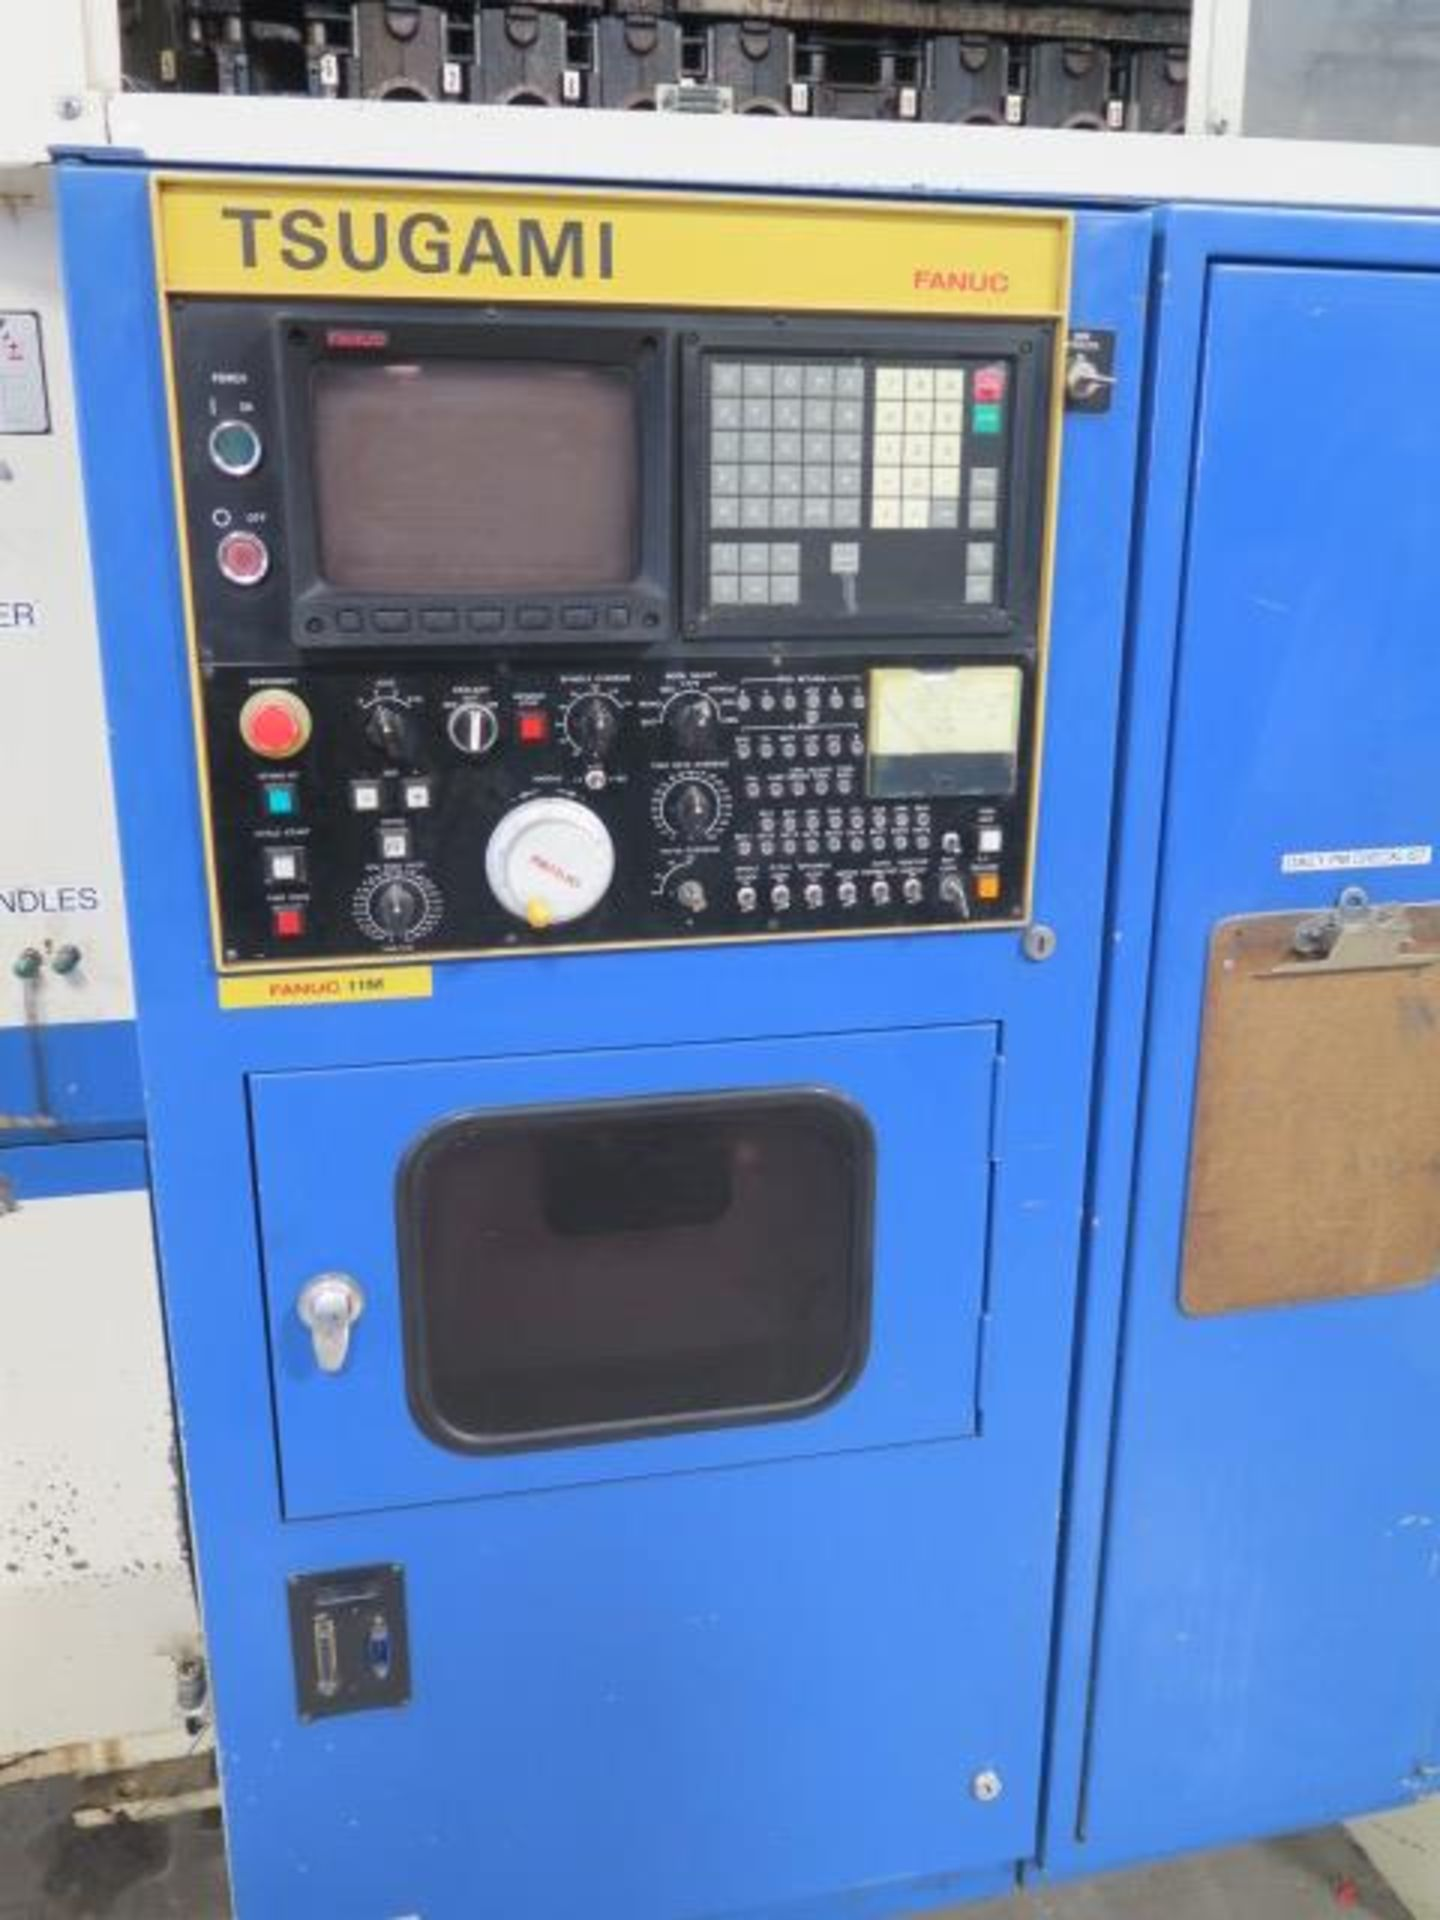 Tsugami MS3.10P Type MA3H 4-Axis 10-Pallet CNC HMC (HAS X-AXIS PROBLEM), SOLD AS IS - Image 4 of 20